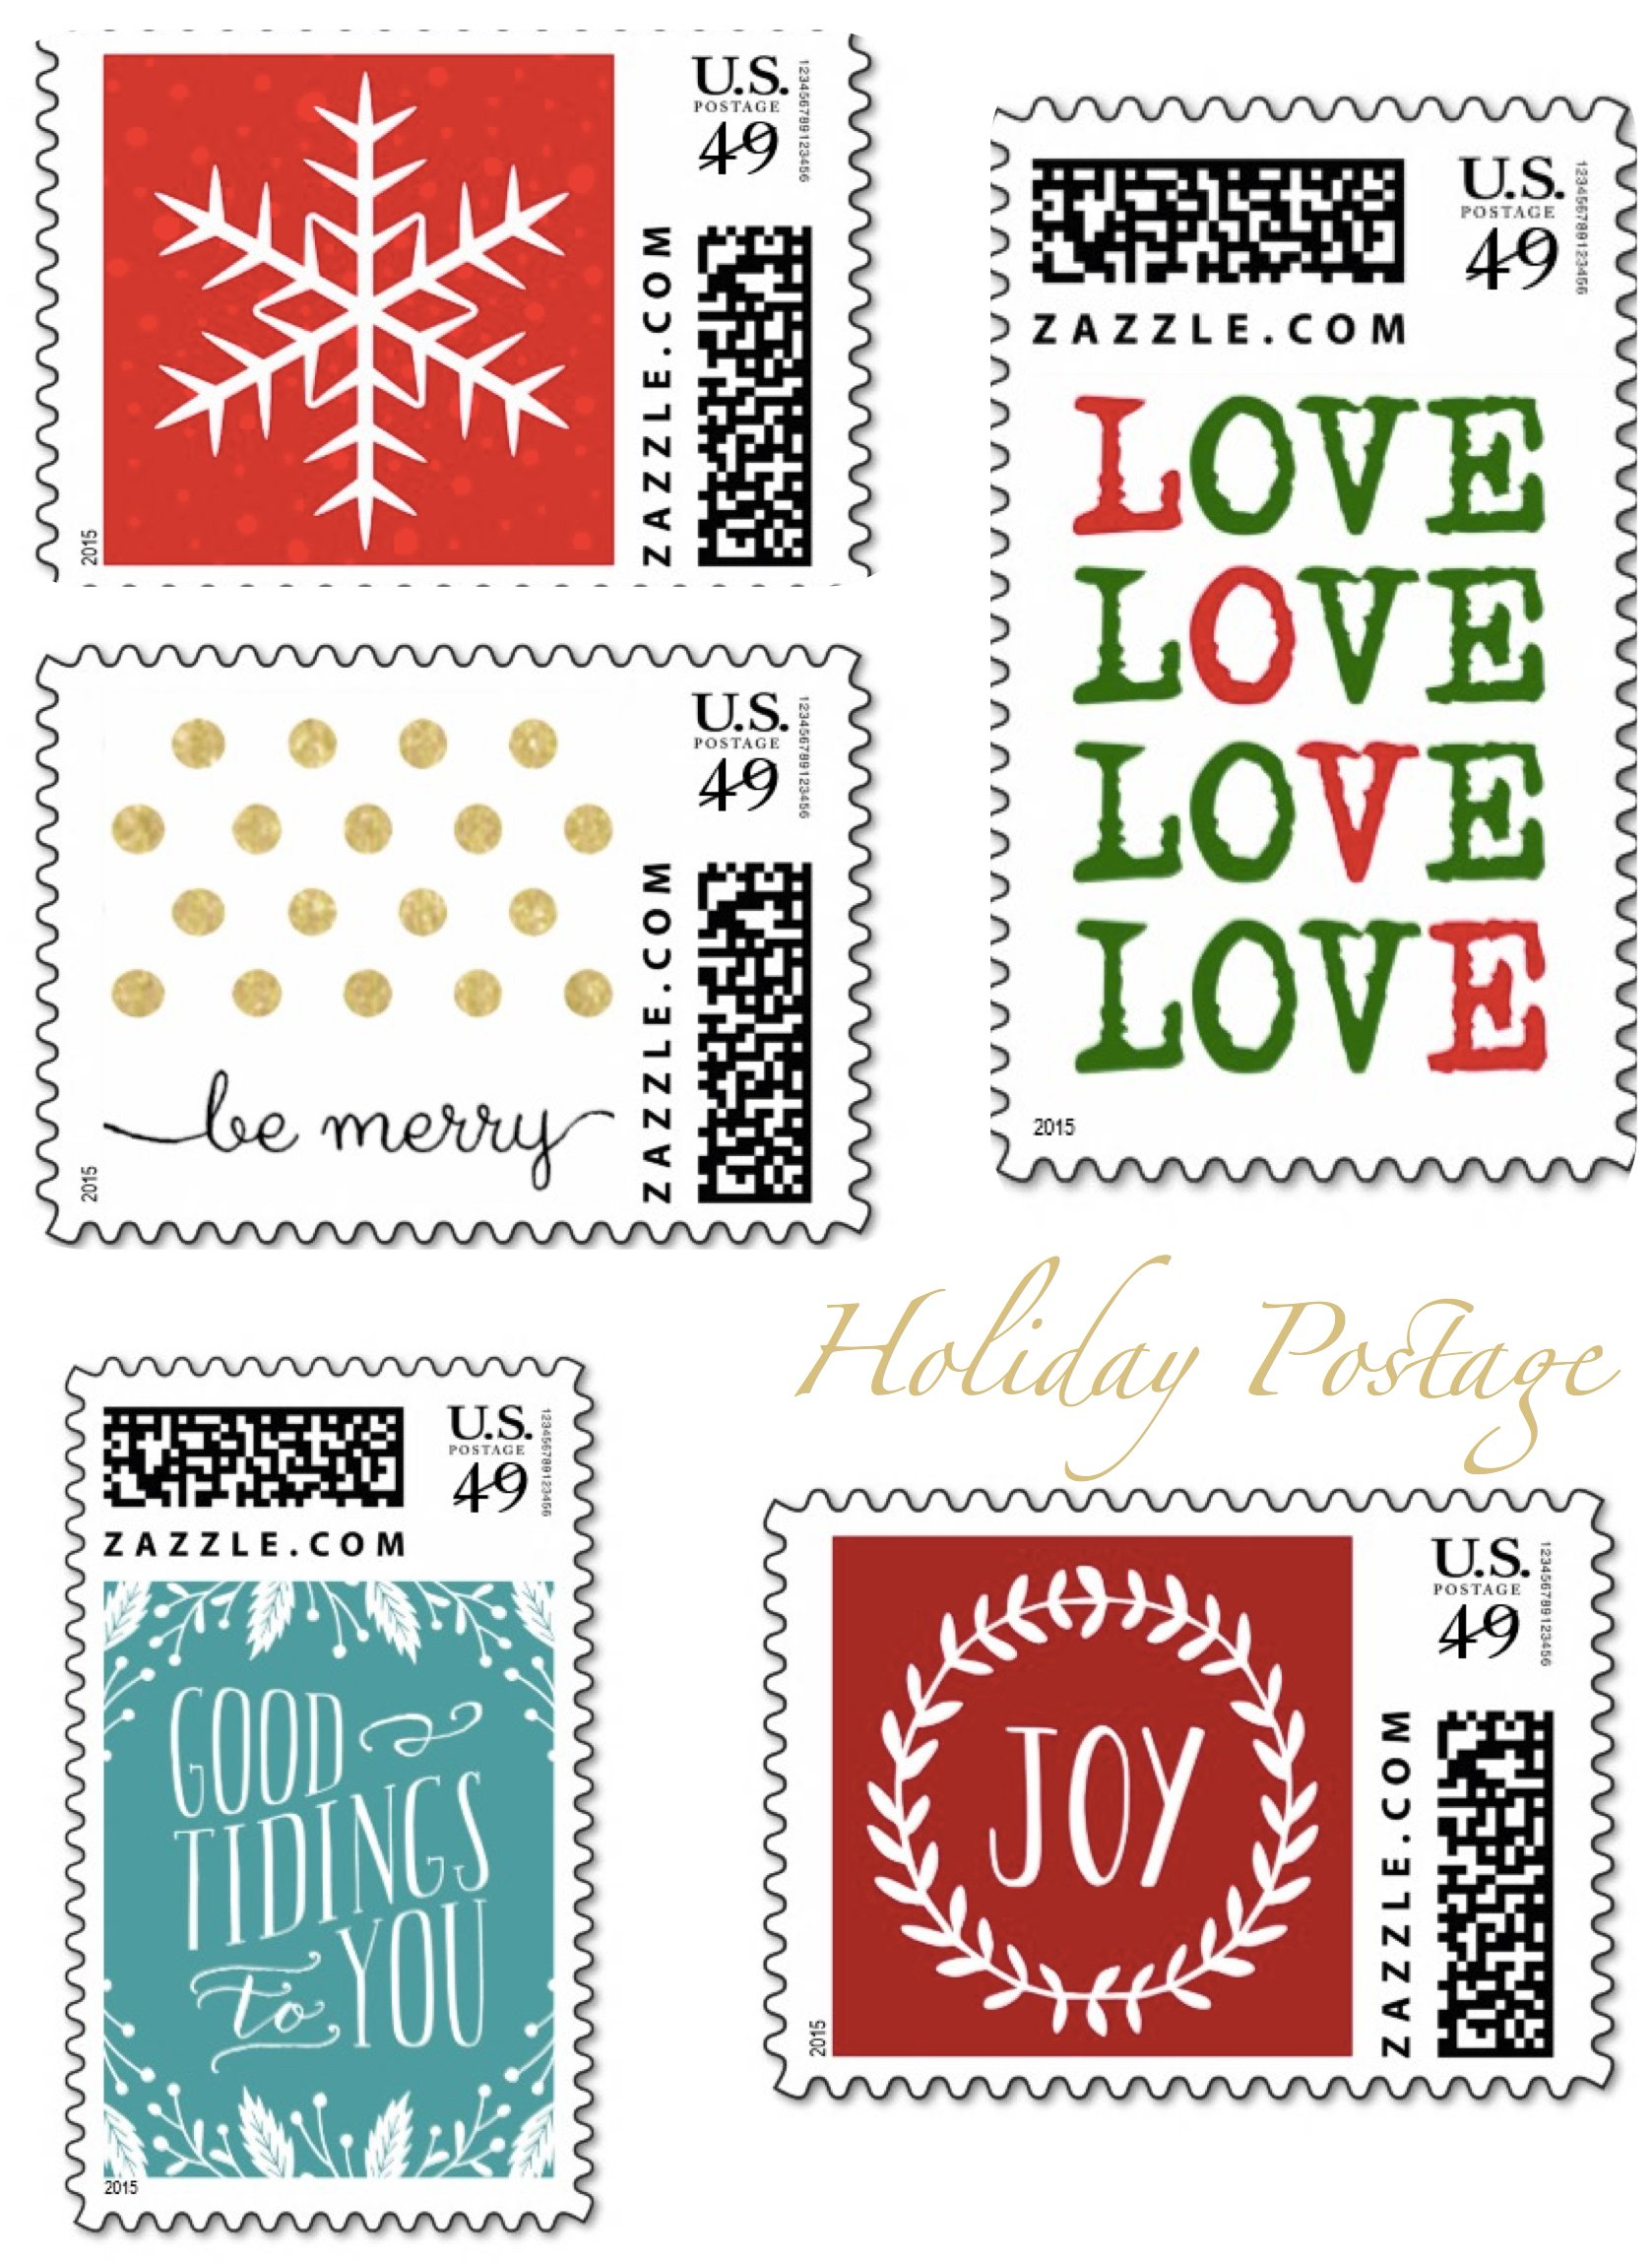 Holiday Postage for your Holiday Card Envelopes